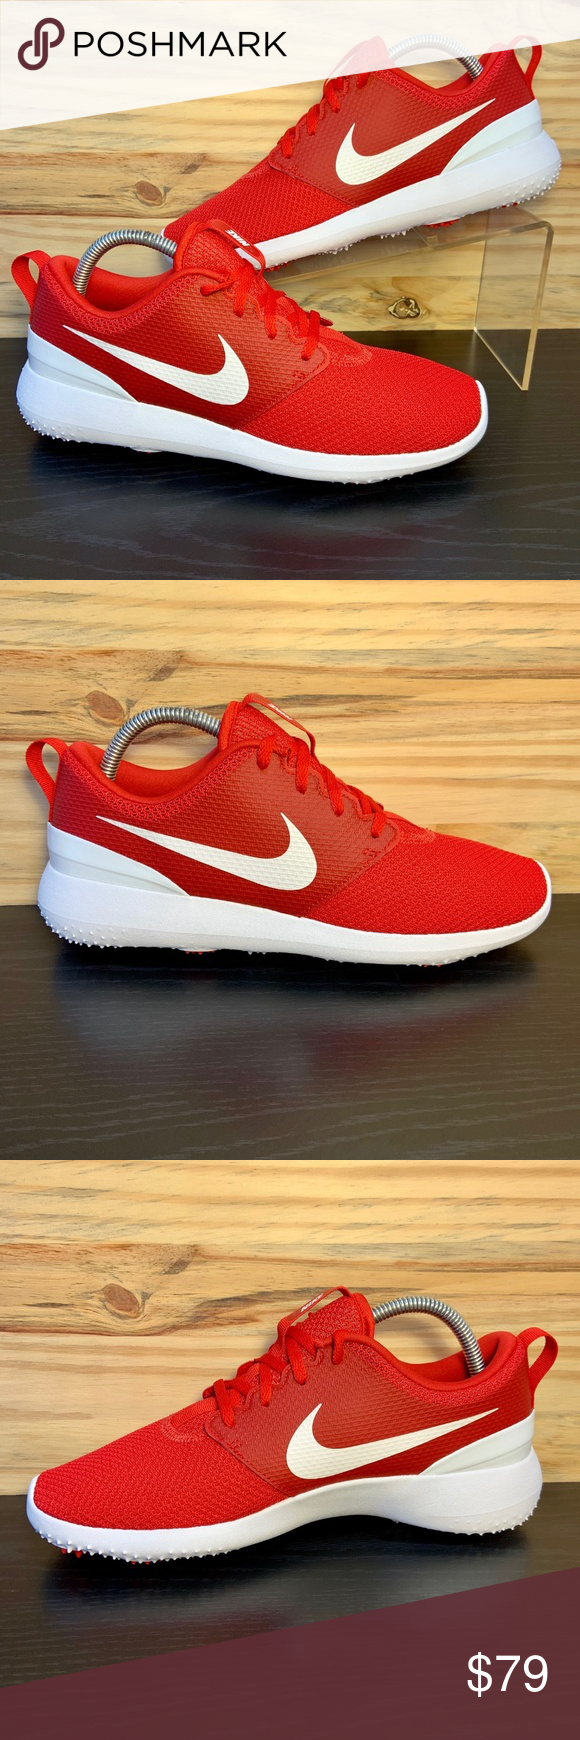 34++ All red nike golf shoes ideas